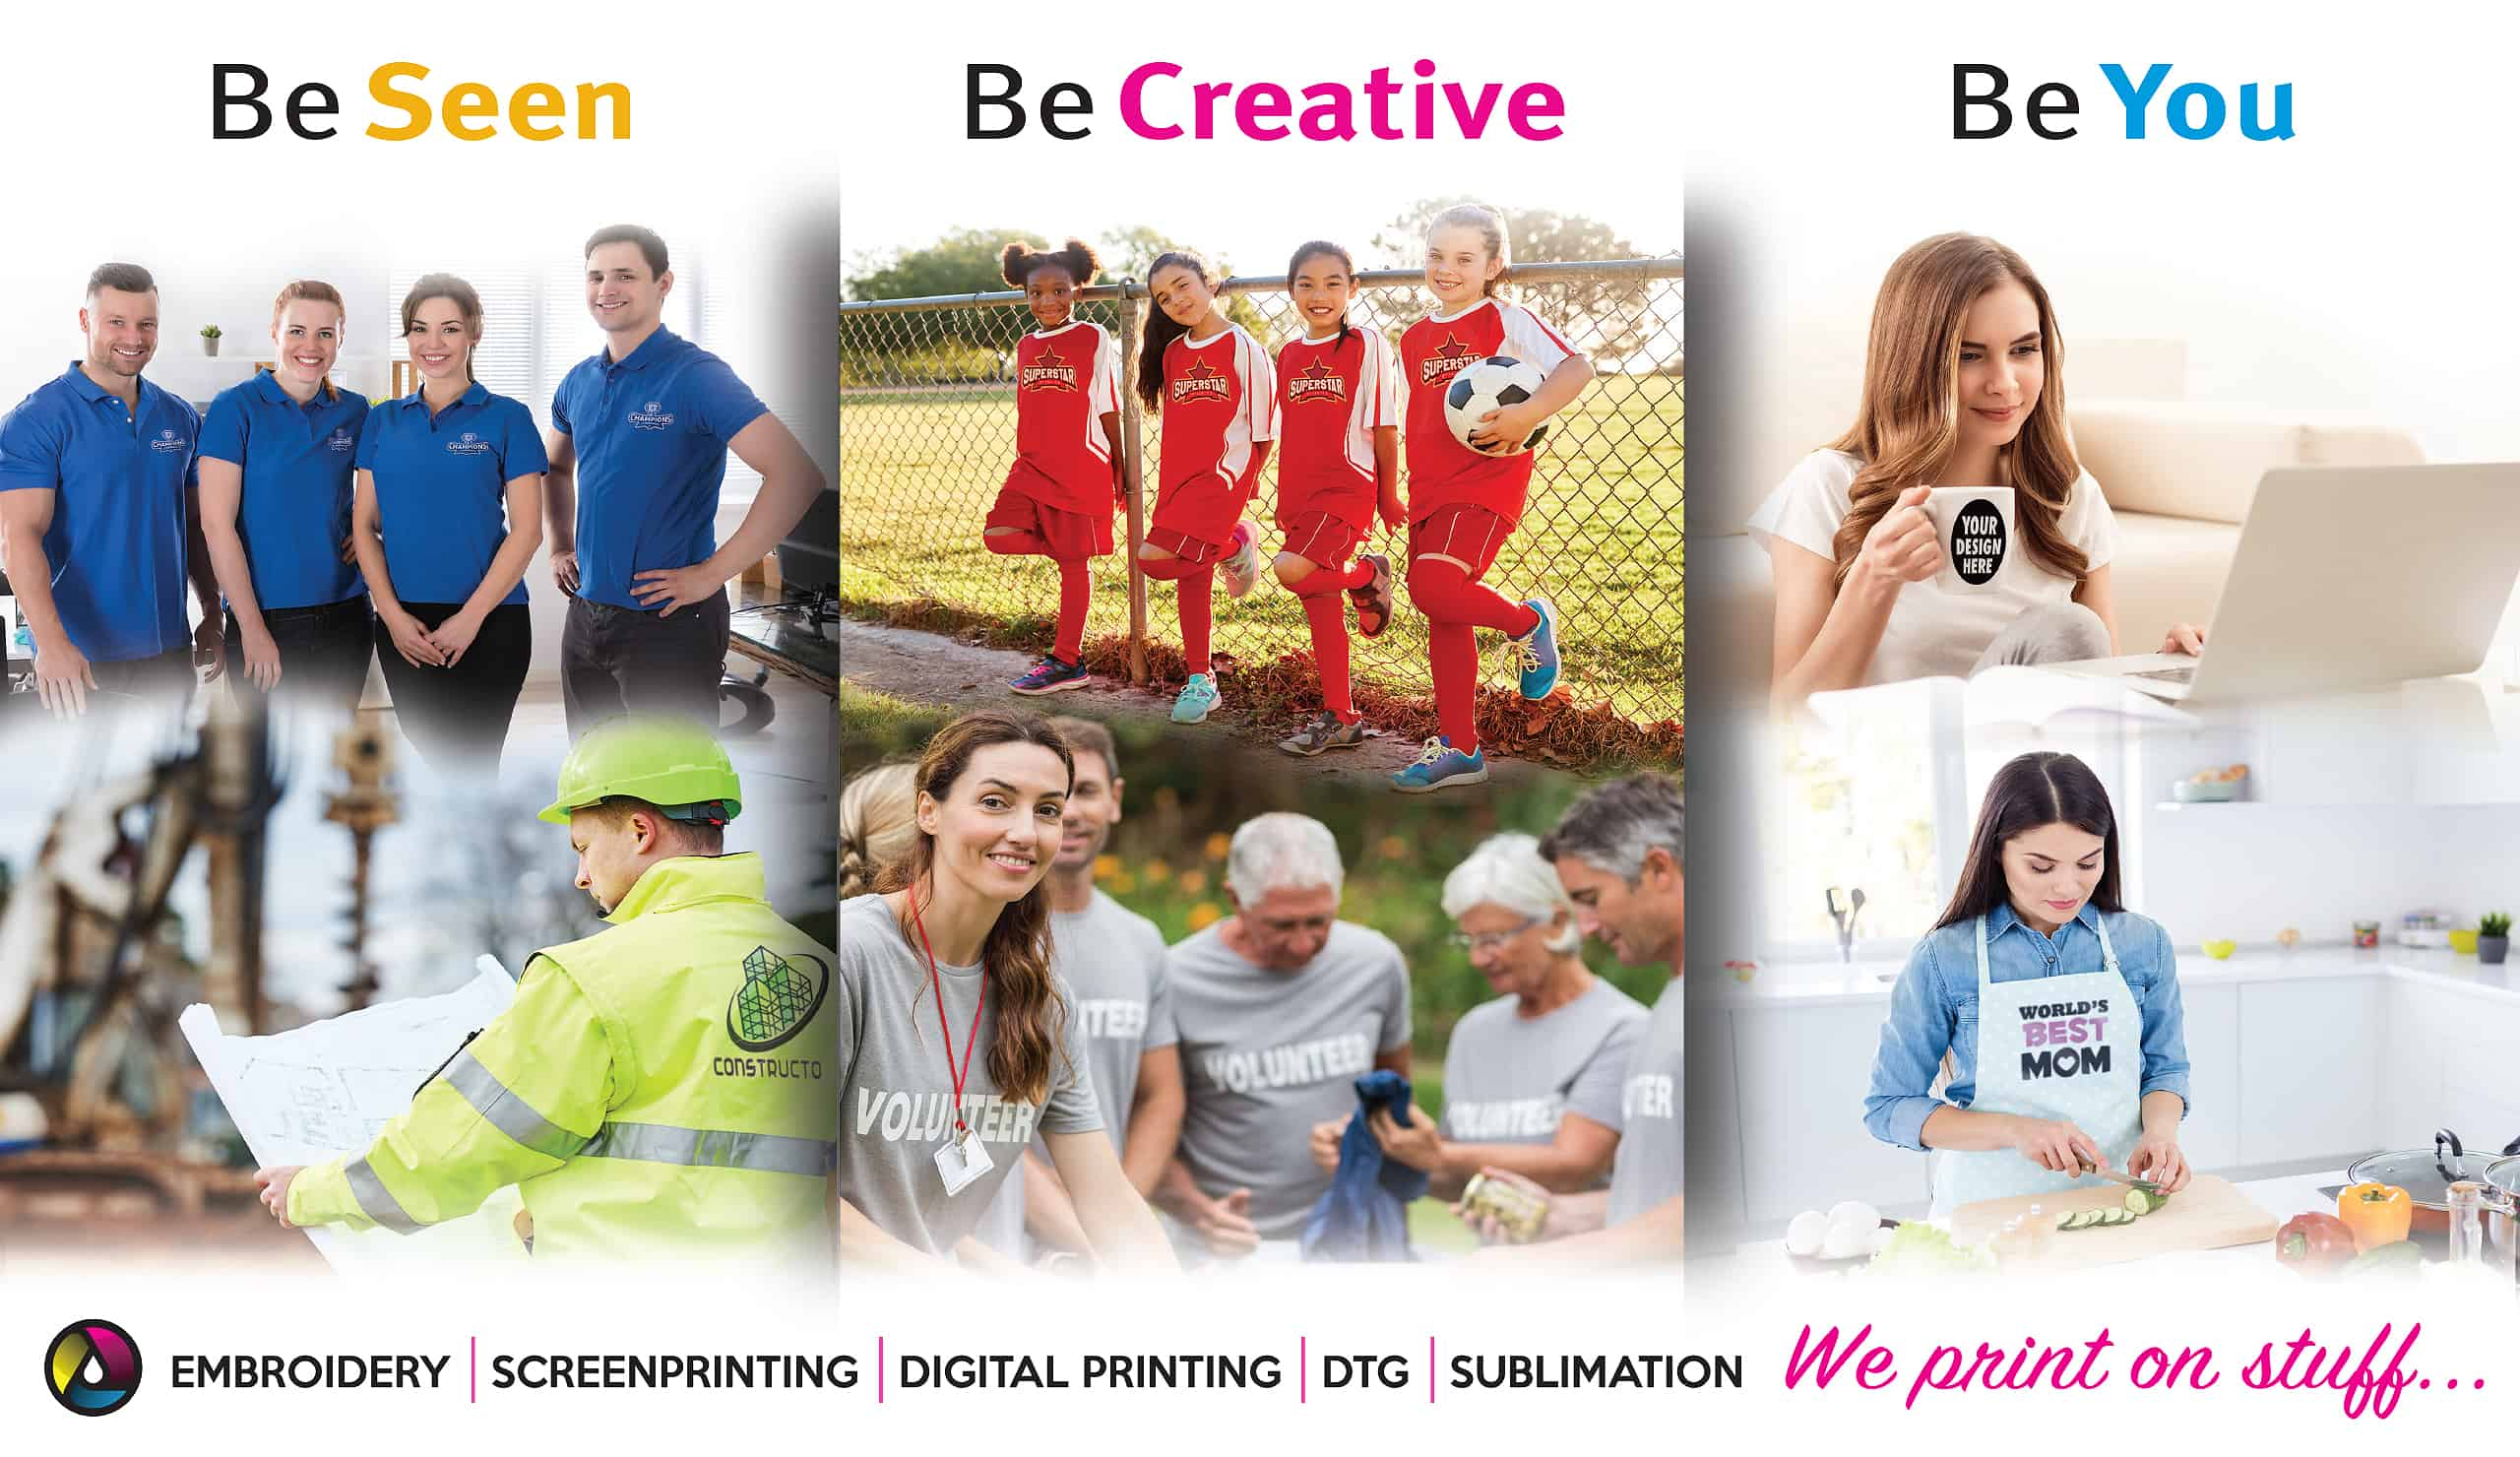 Be seen, be creative, be you! We print on stuff: Embroidery, screen printing, direct-to-garment, sublimation.